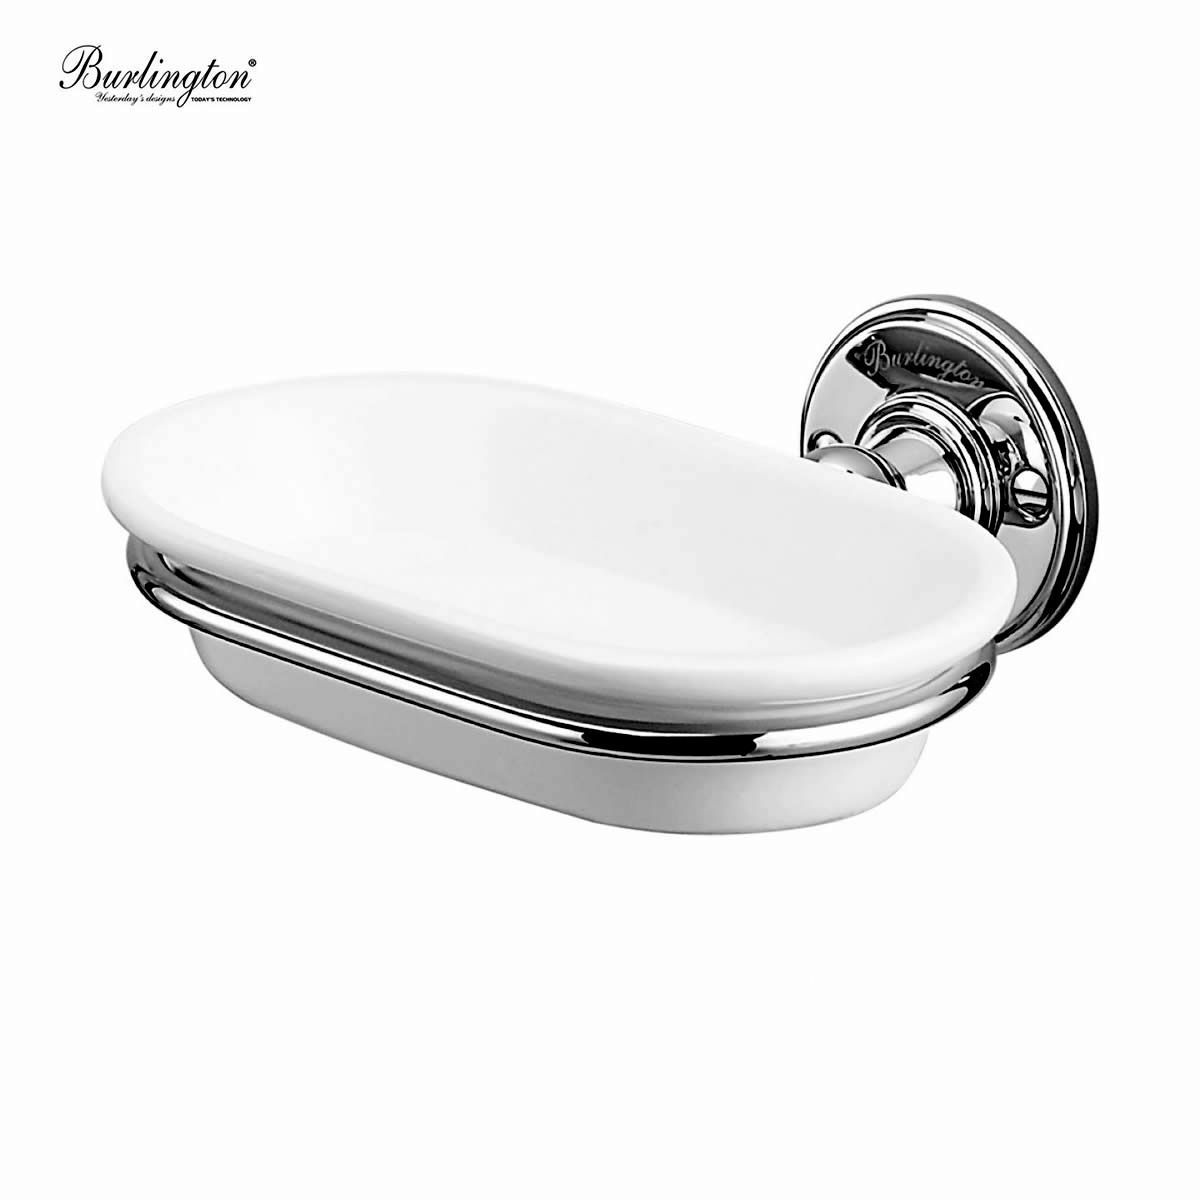 Burlington Wall Mounted Soap Dish Bathrooms Direct Yorkshire